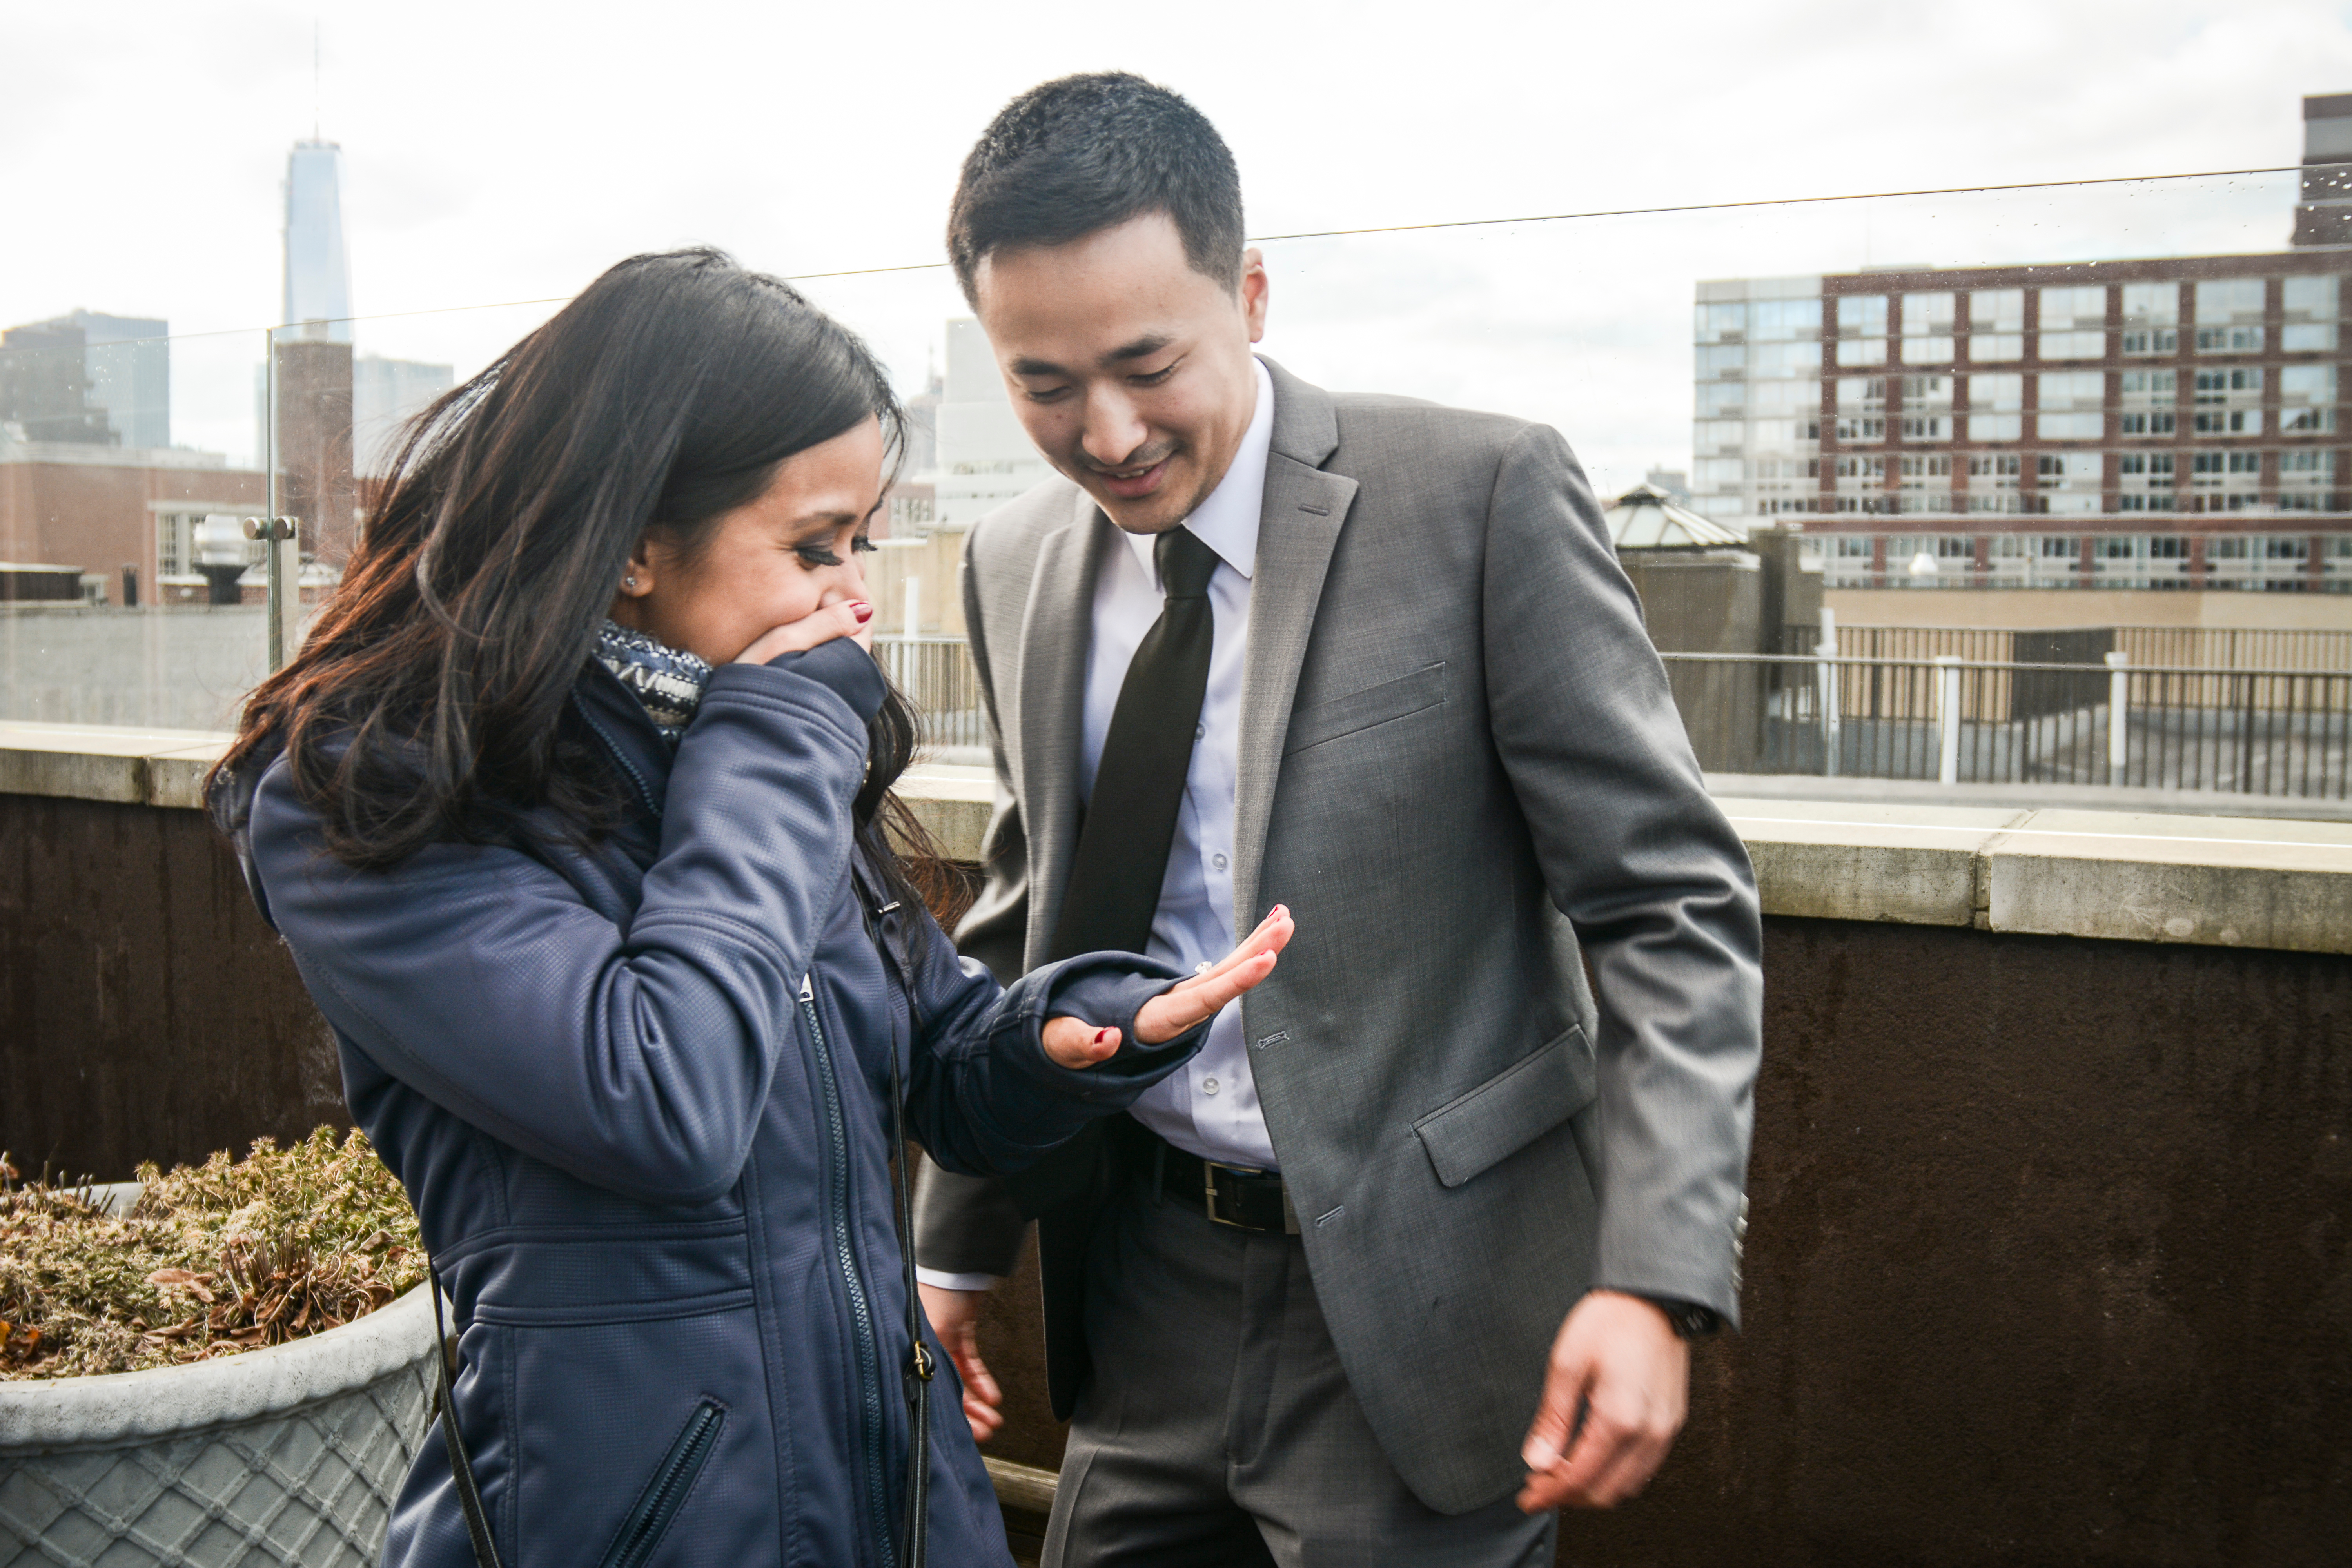 Image 5 of Jacqueline + James: Manhattan Marriage Proposal